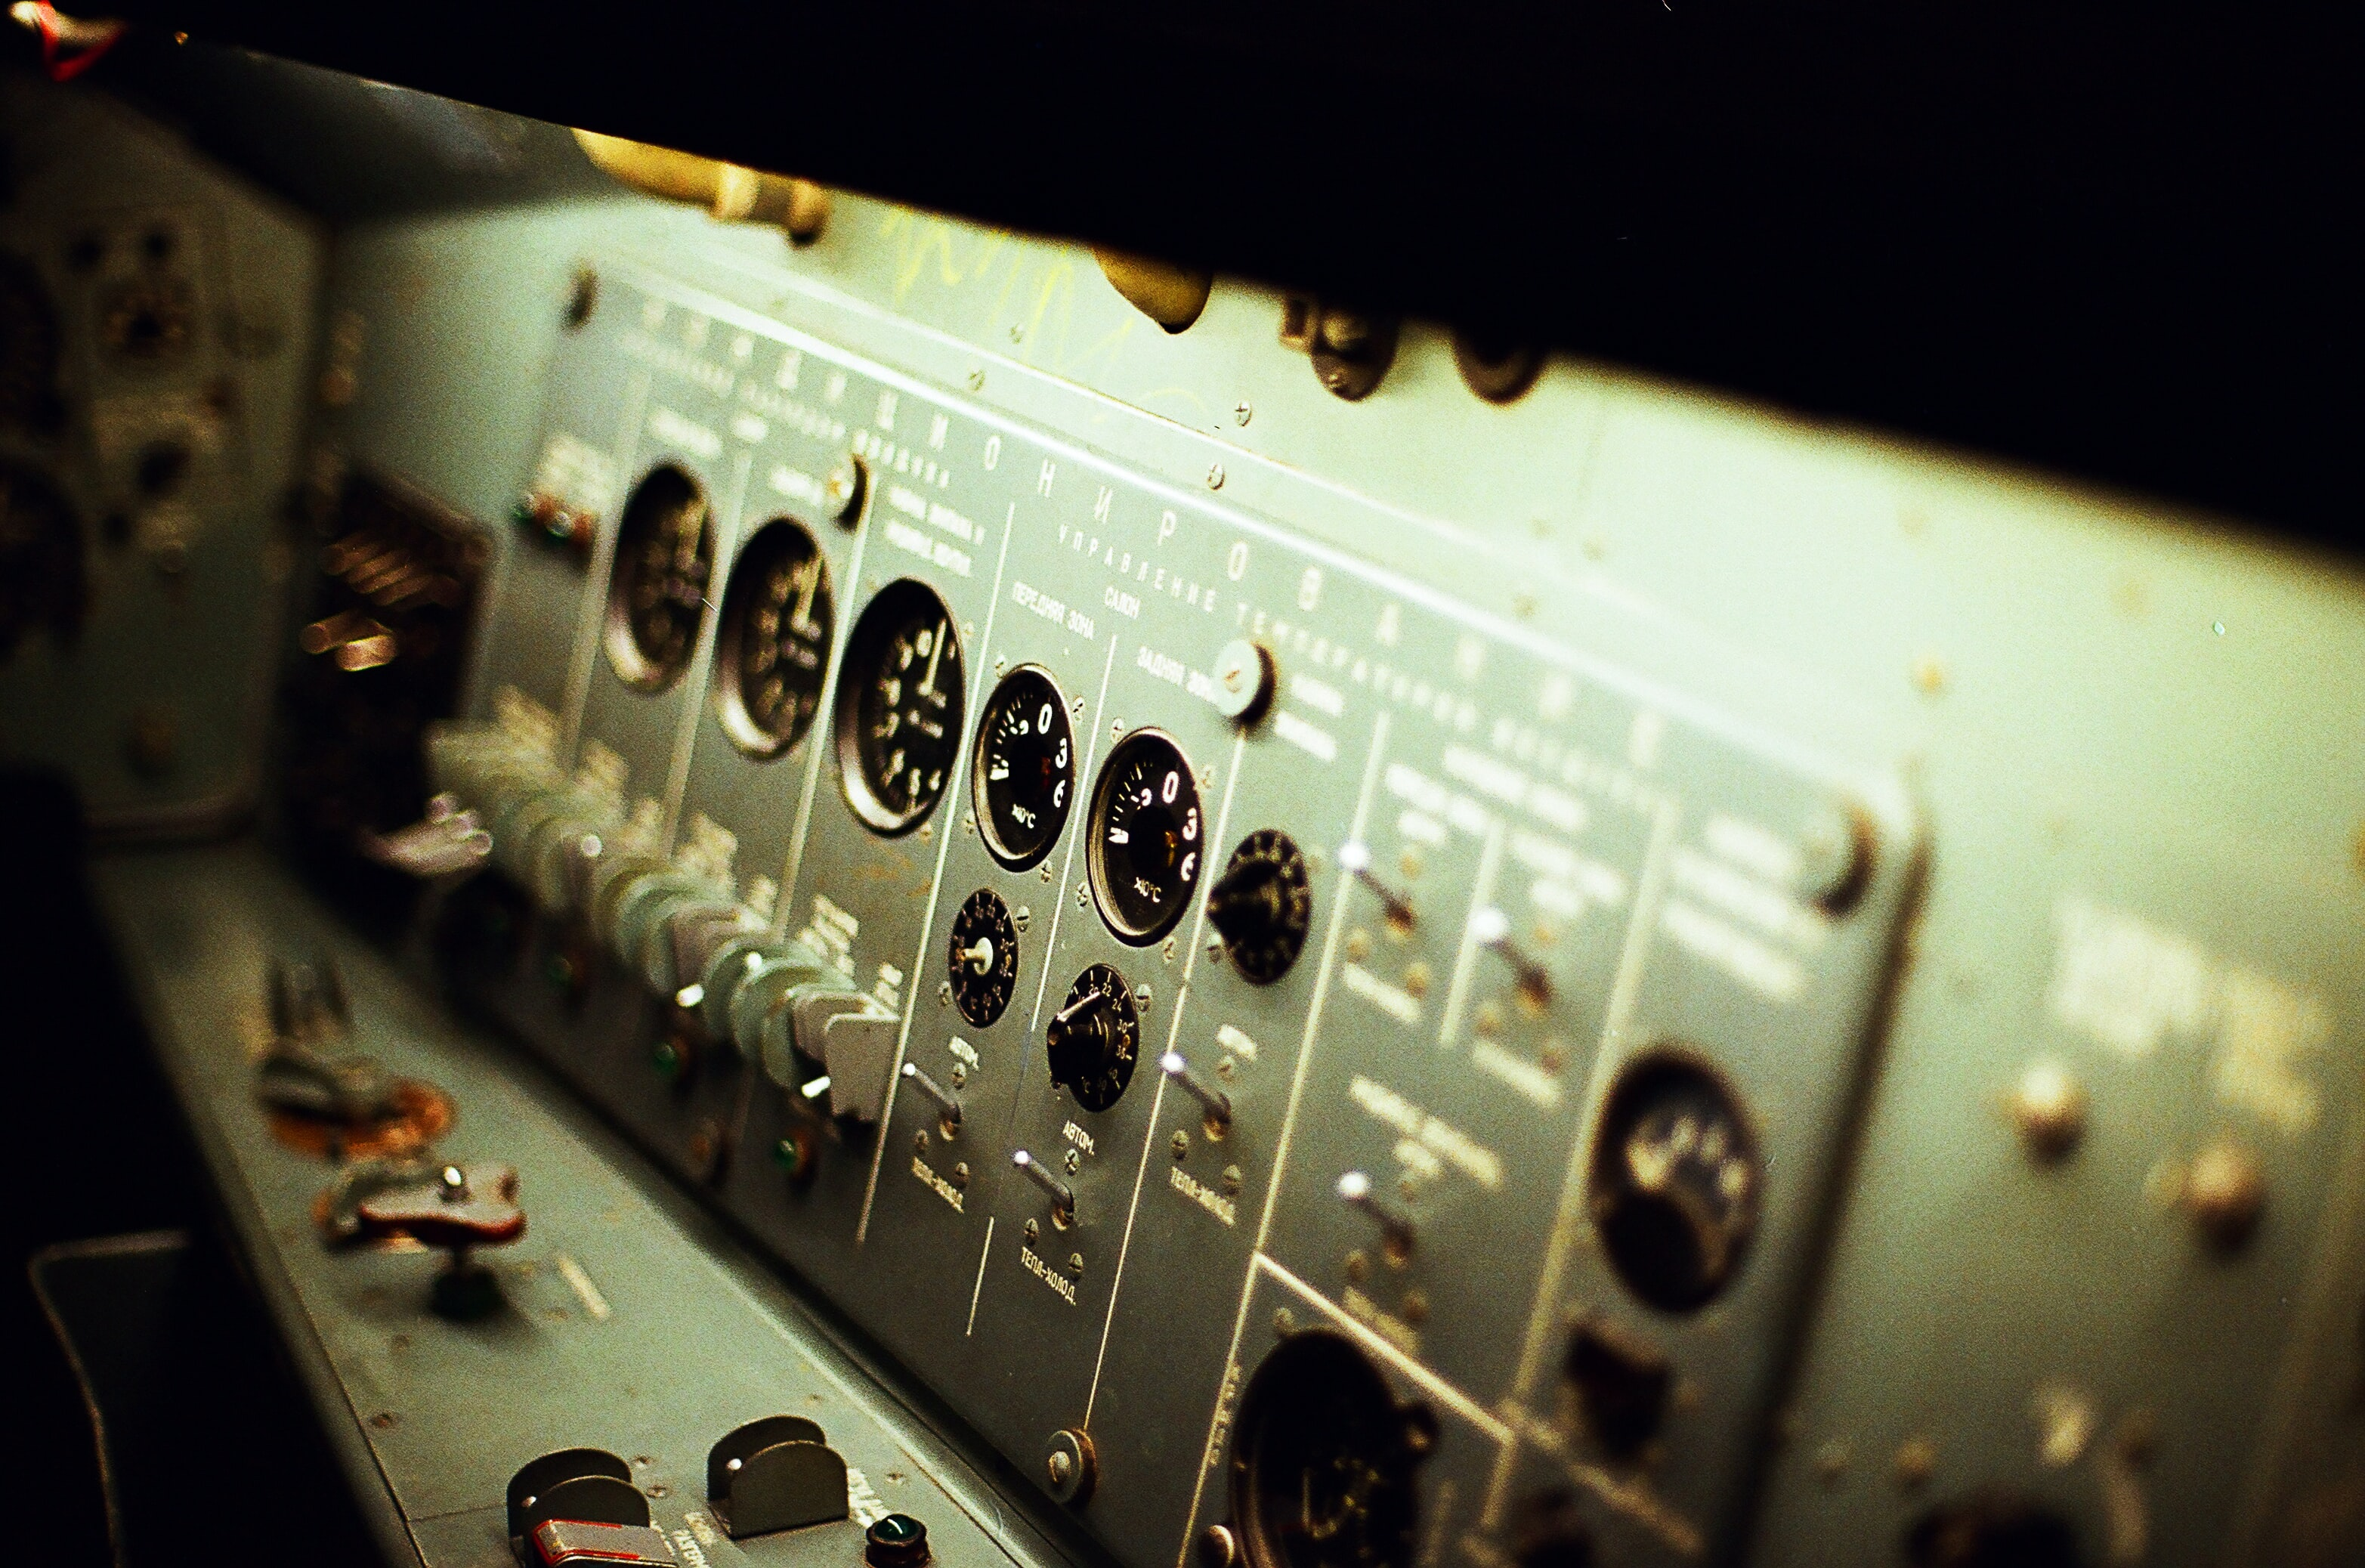 An old Russian control panel with various dials and knobs